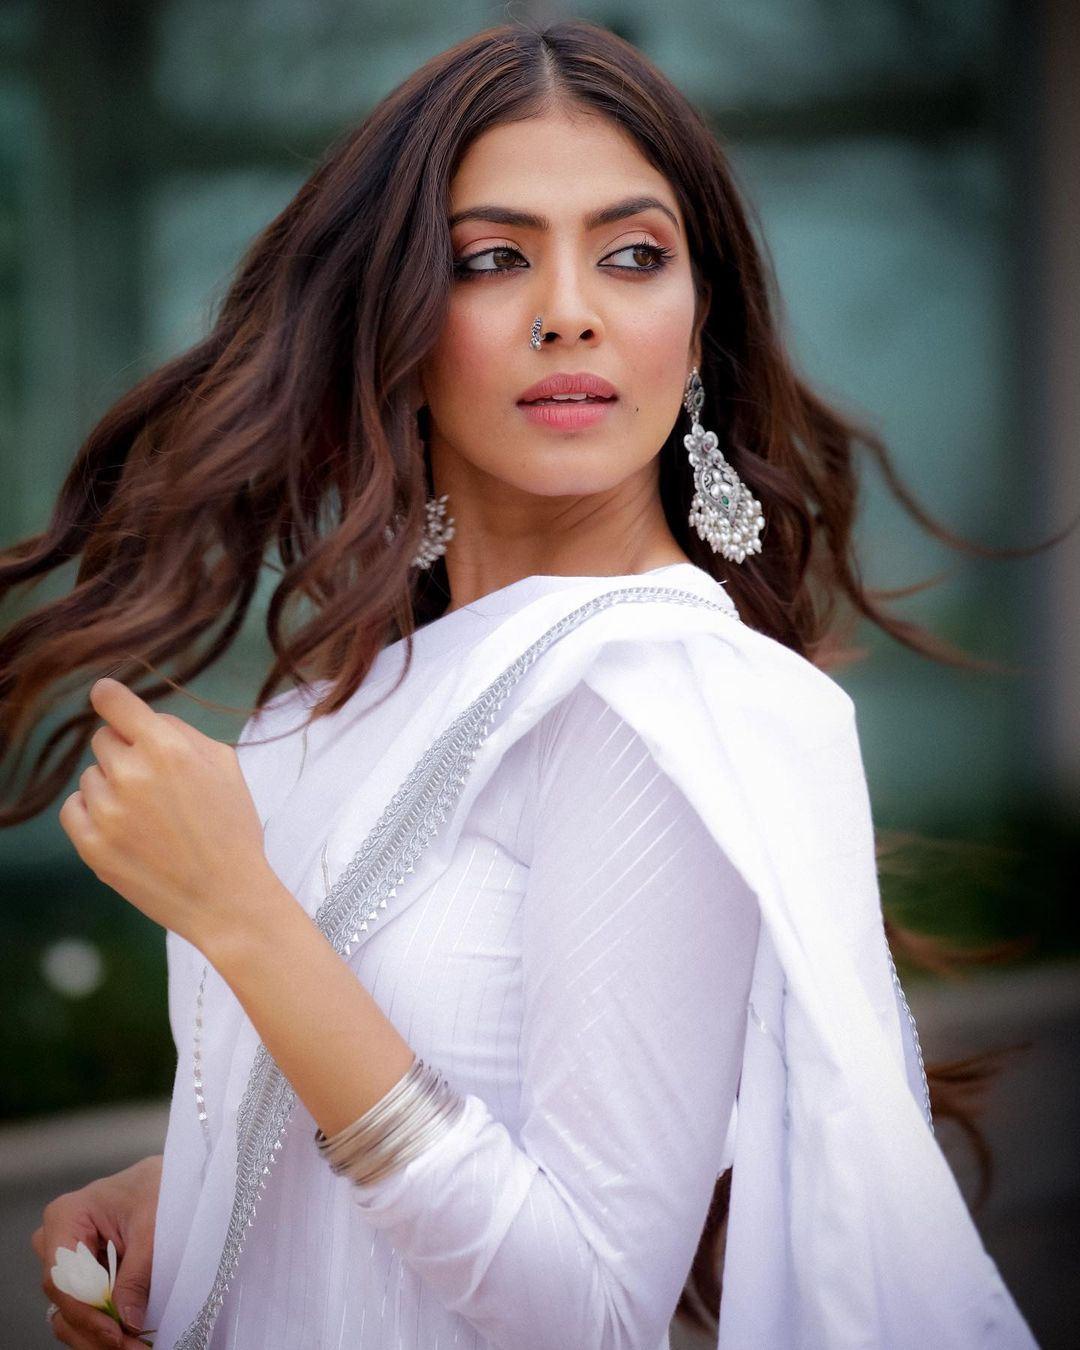 Malavika Mohanan looks graceful in the plain white suit. (Image: Instagram)